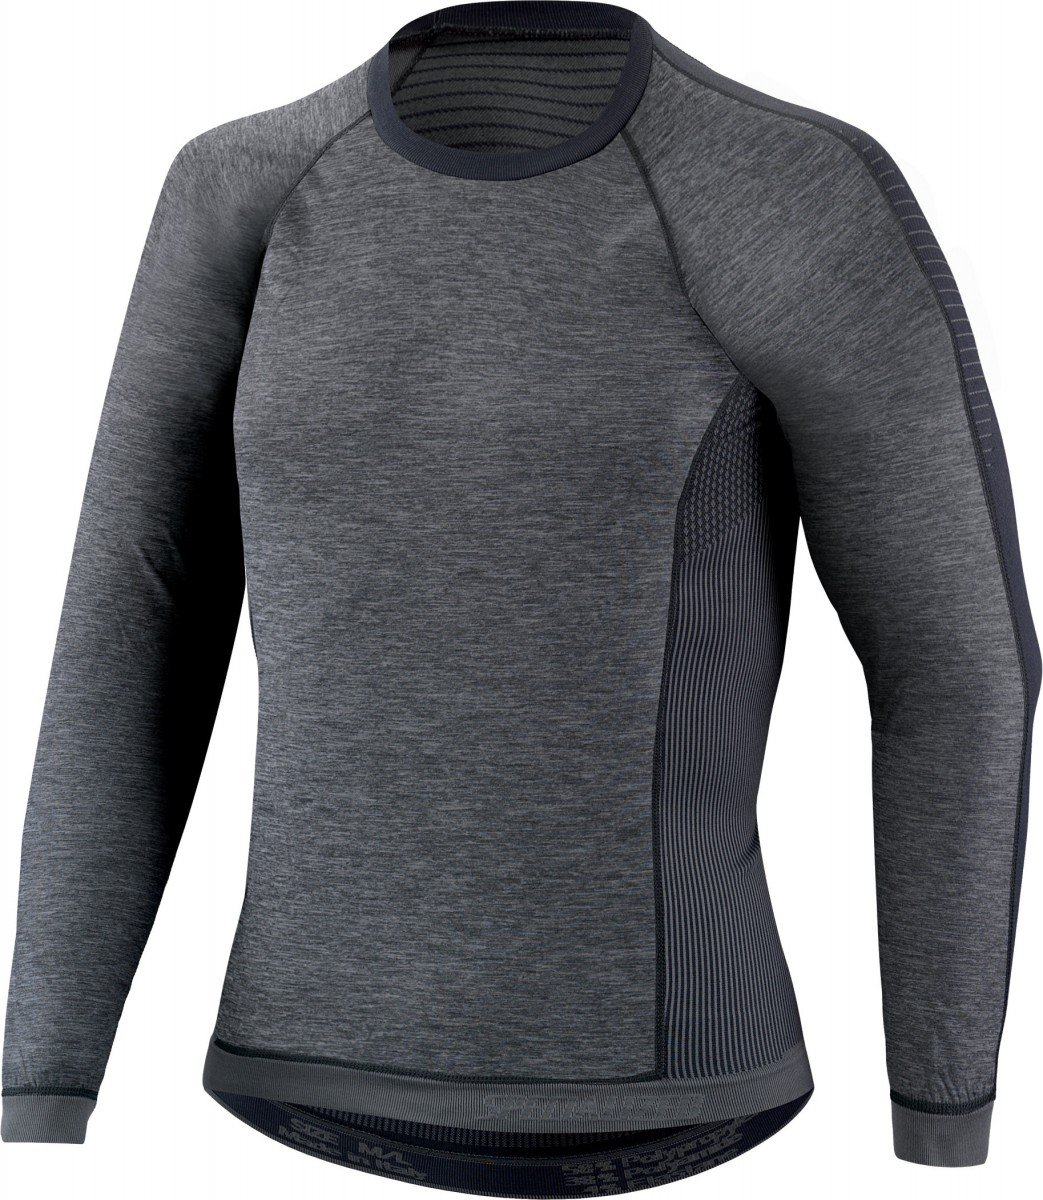 EAN-code: 1000001622866 Brand: SPECIALIZED Product: ONDERKLEDING L.M. MAAT XL/XXL NAADLOOS MET PROTECTIE GRIJS (Part-No: 644-90275) at cycleXperience.nl